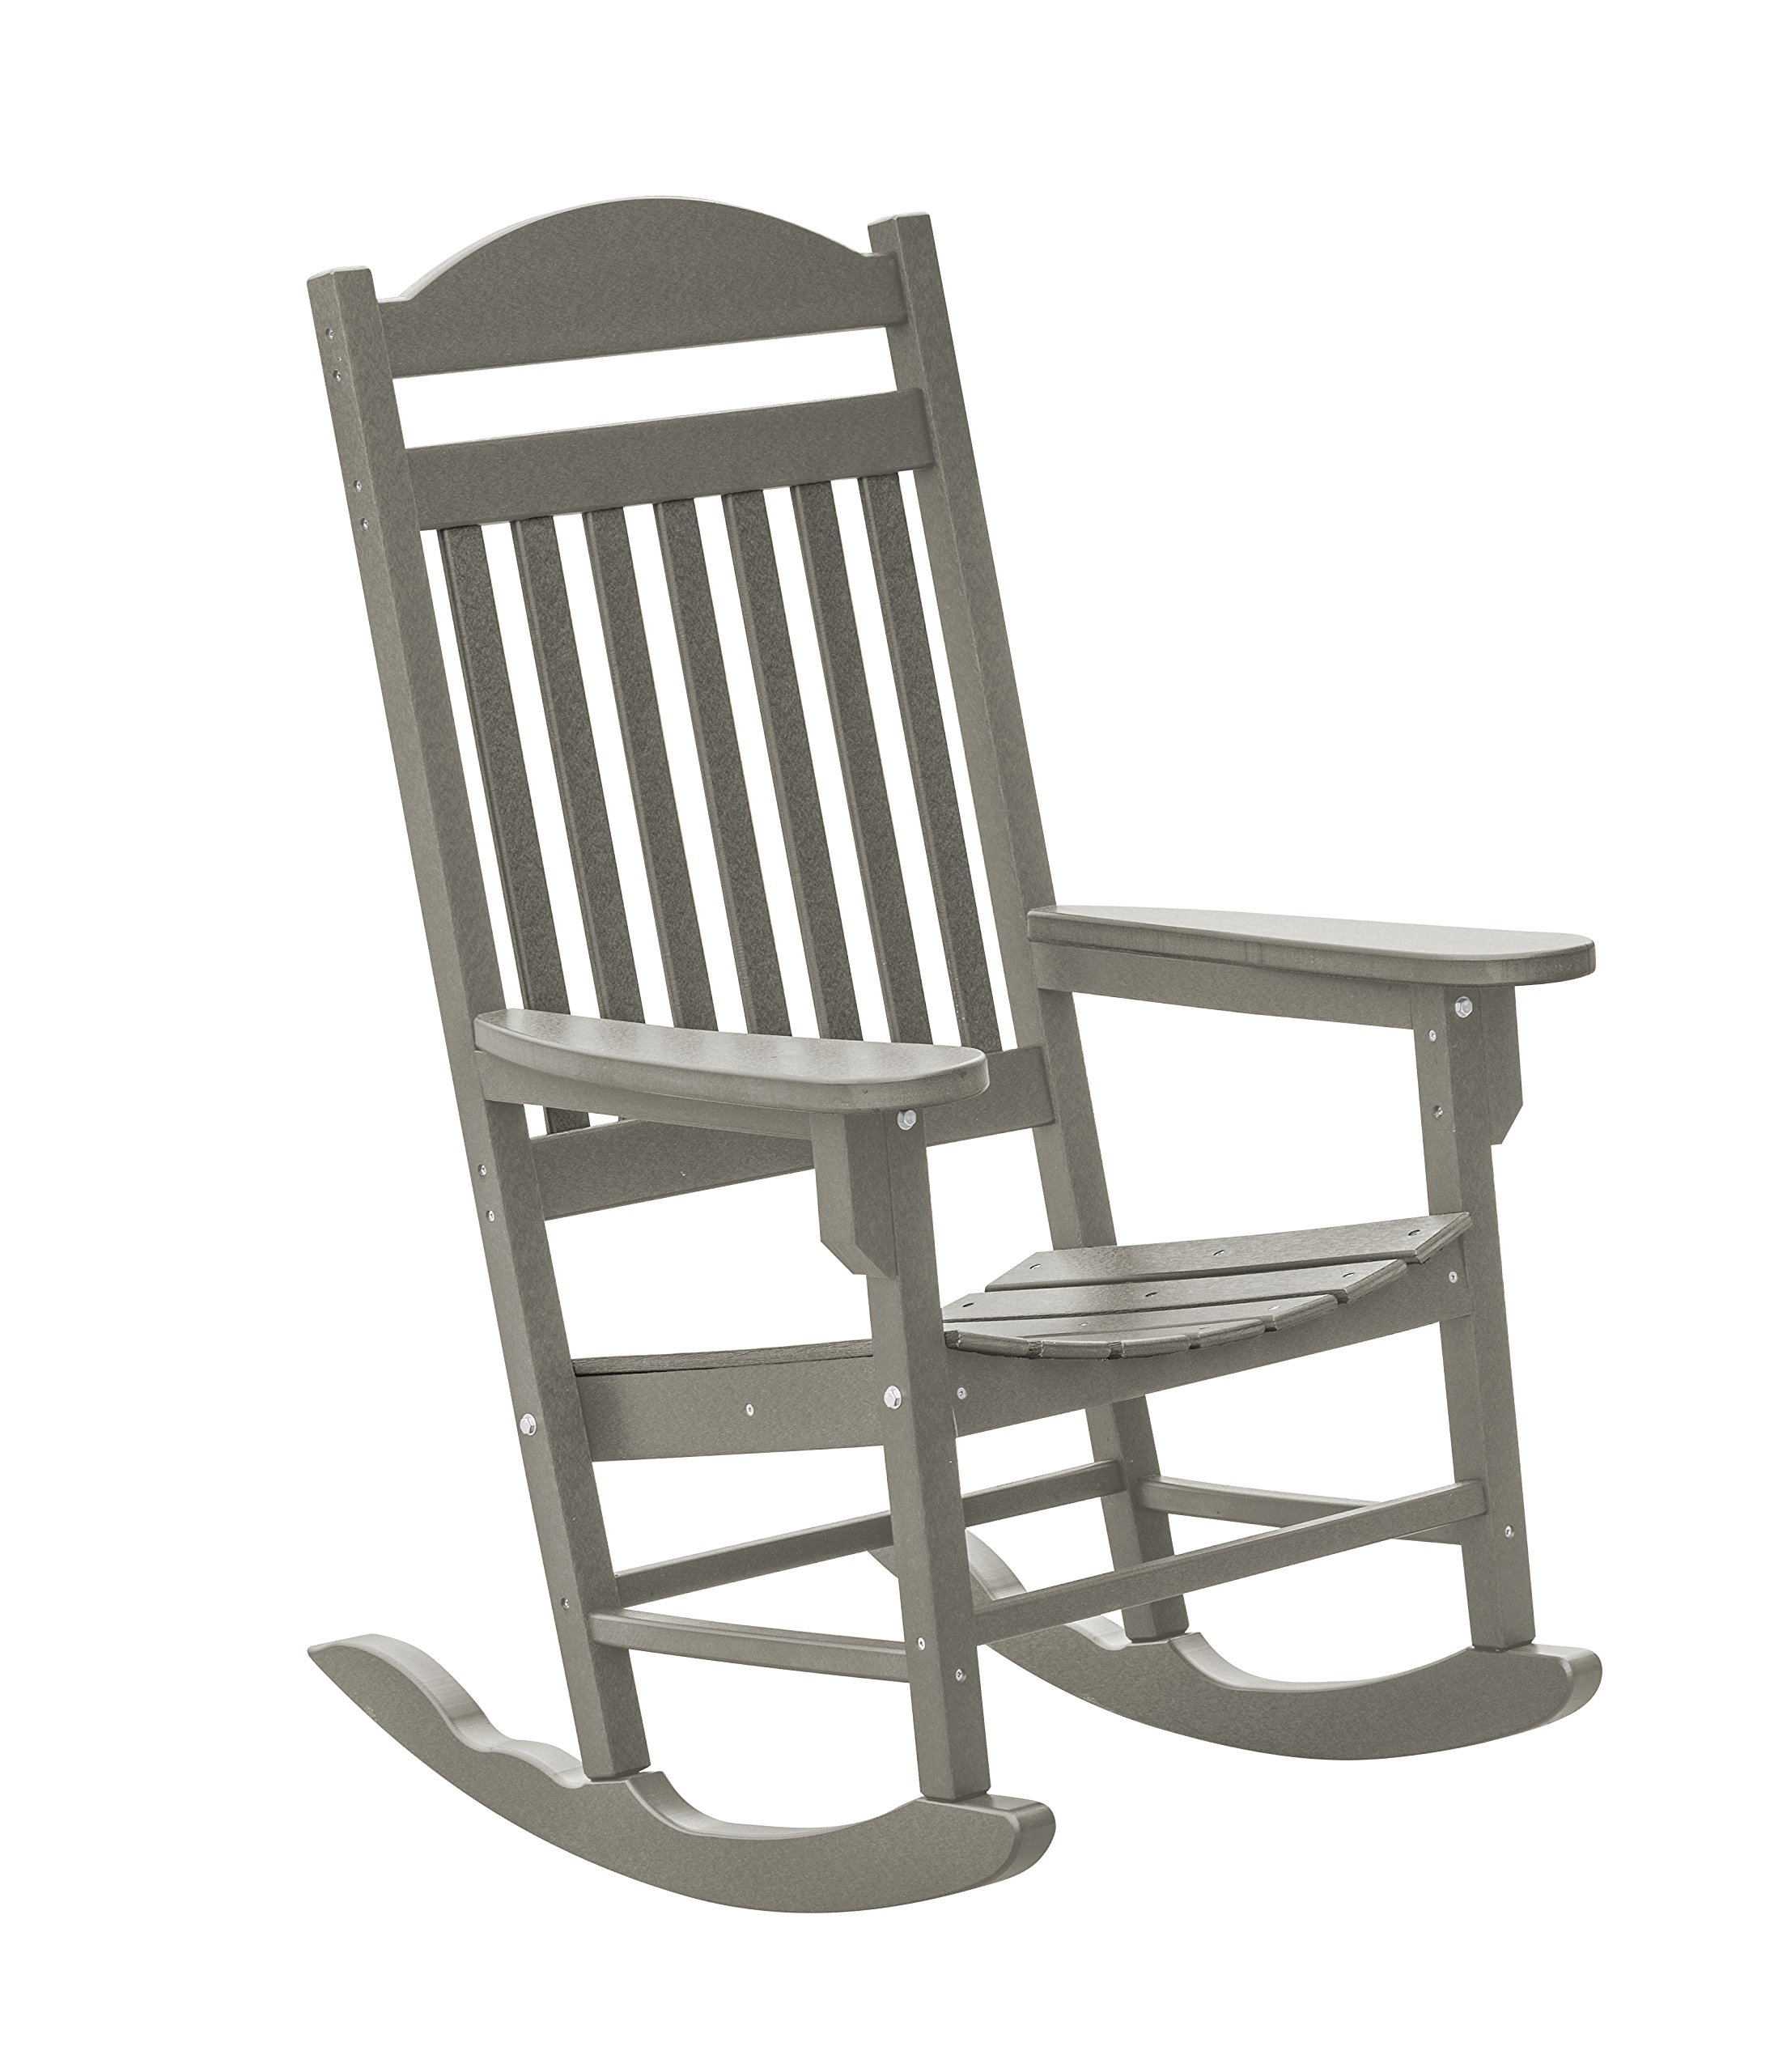 Little Cottage Company Lcc-101 Heritage Traditional Rocker, Light Gray